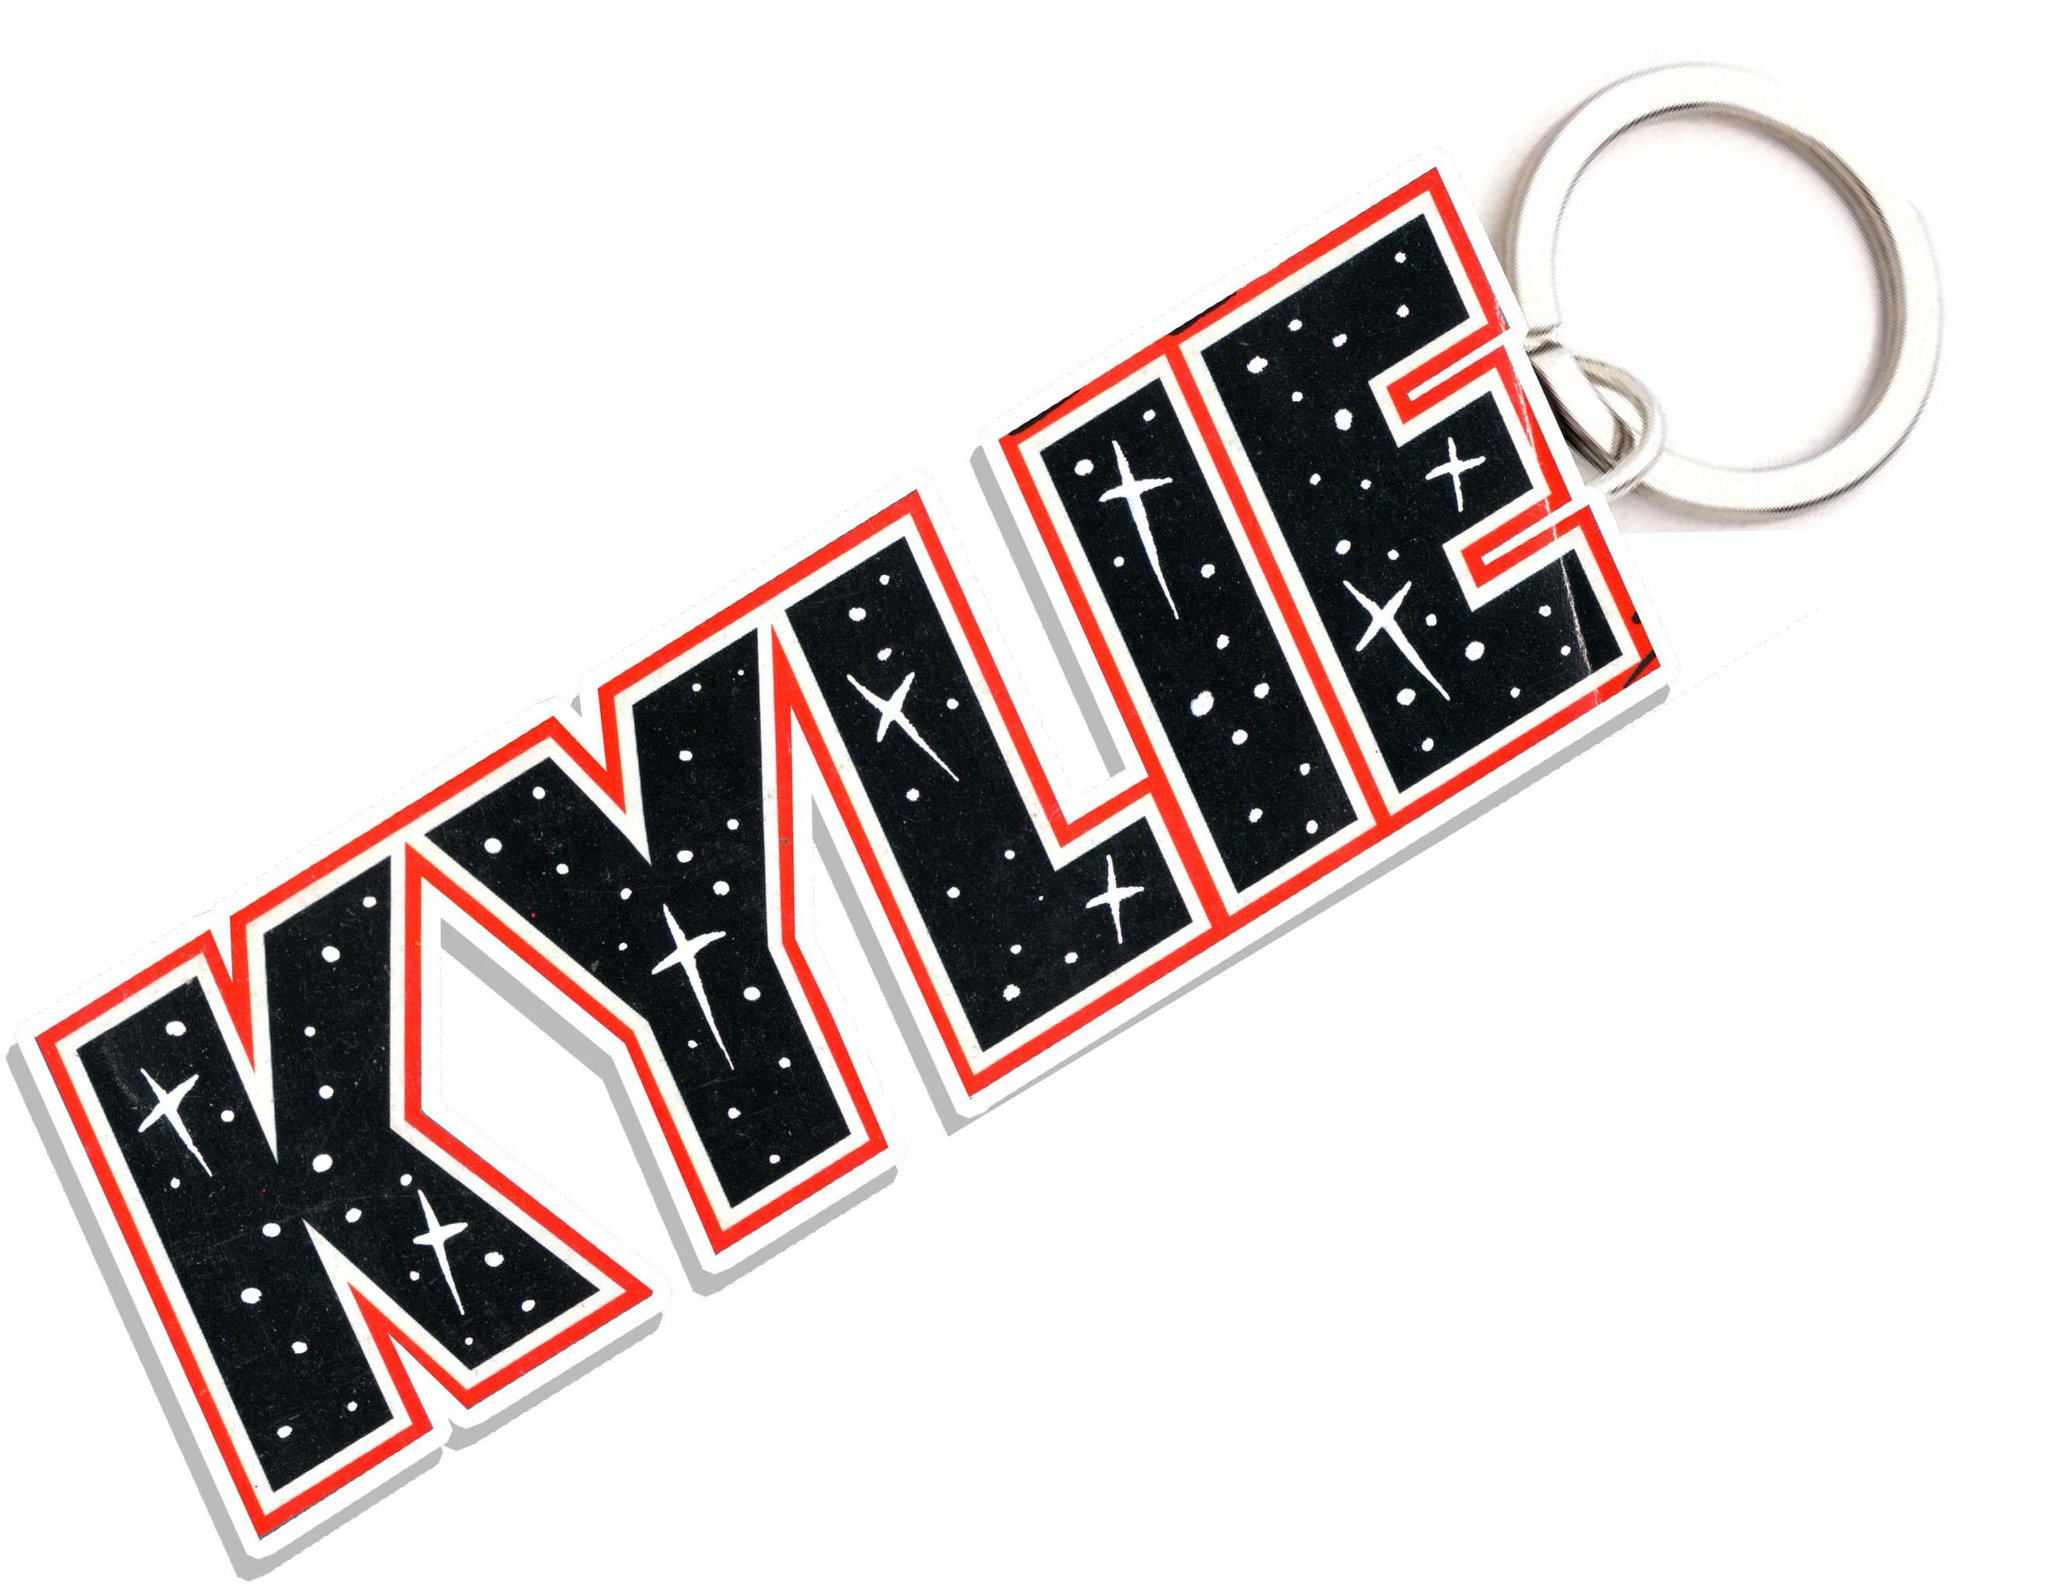 You need a little extra sparkle? Check the keychain in my merch store http://t.co/jrxKuc6UJK ✨🌟 http://t.co/oEbGeSFsVj